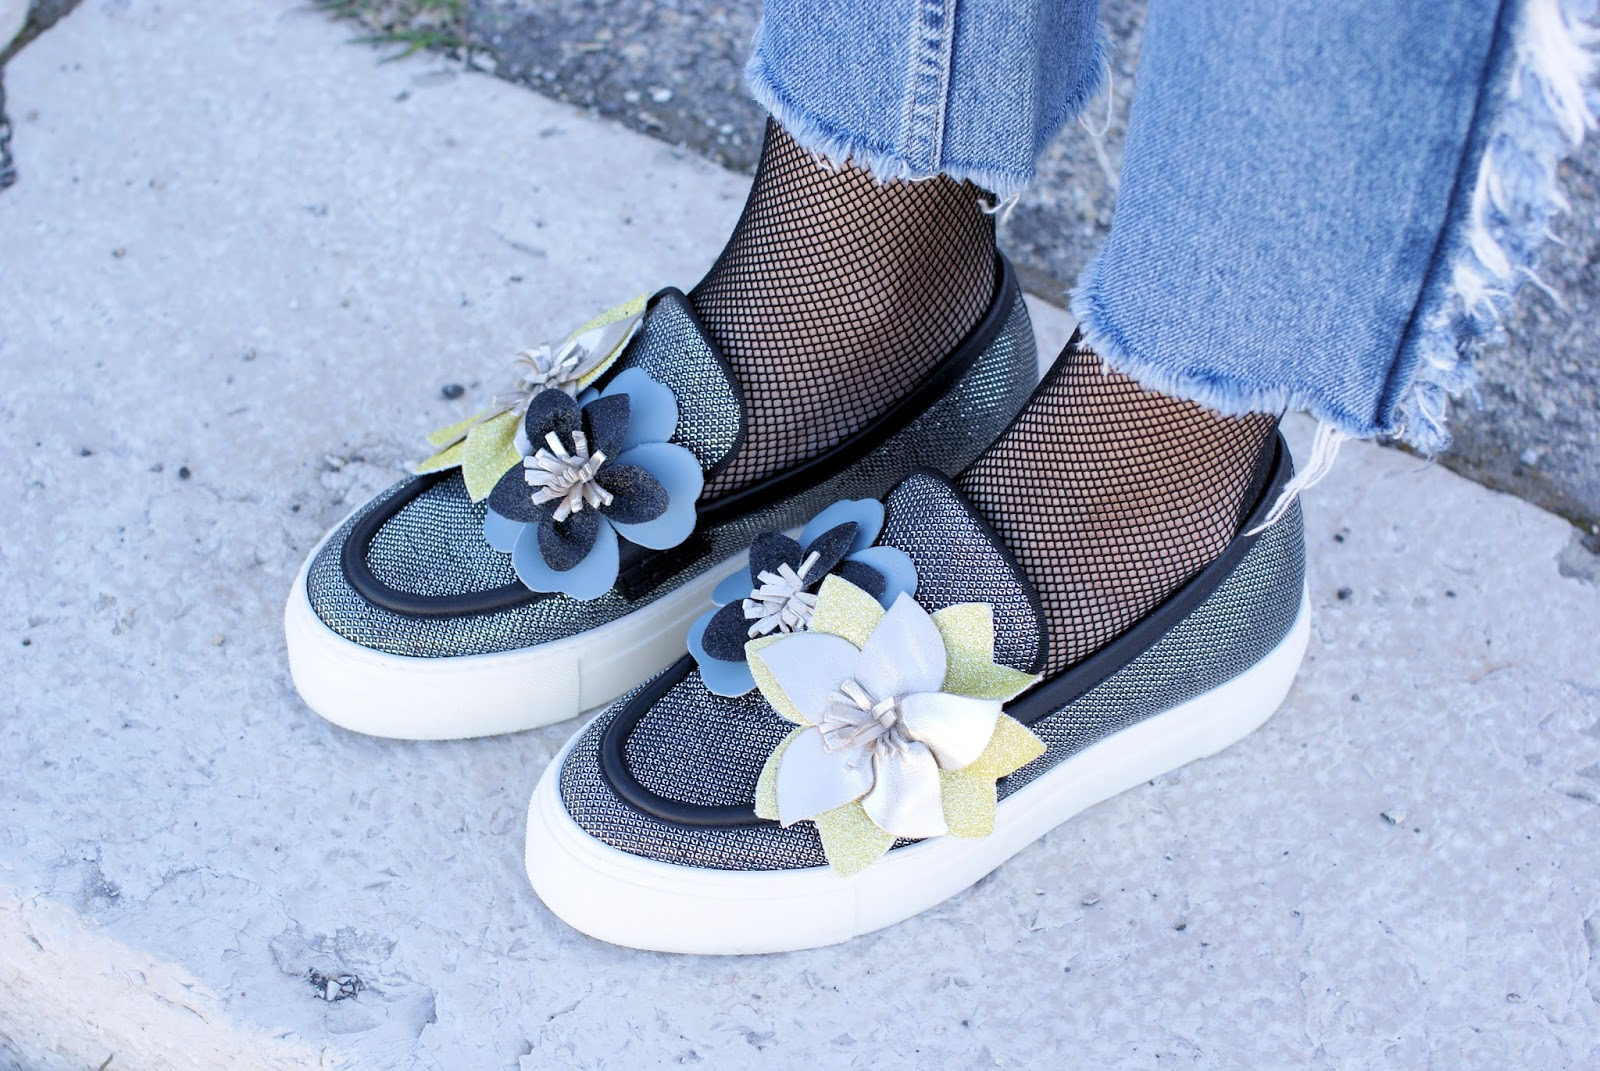 181 shoes on Fashion and Cookies fashion blog, fashion blogger style